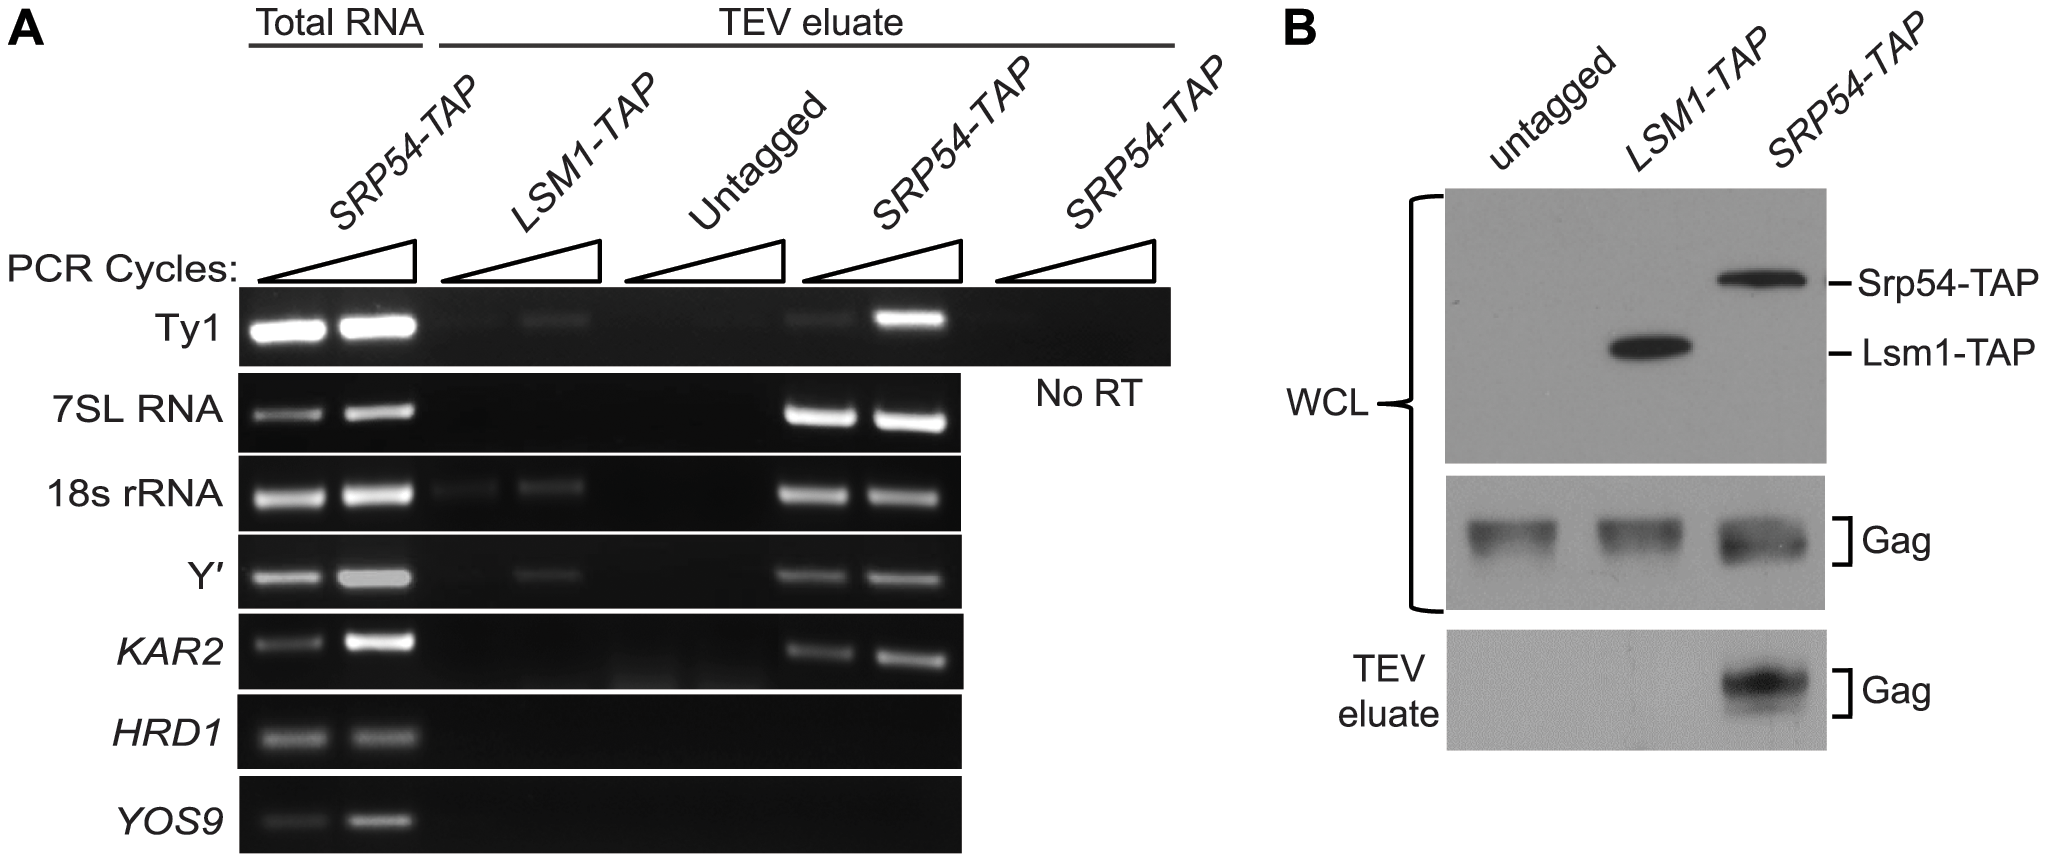 Ty1 RNA and Gag are enriched in affinity-purified SRP-RNC complexes.